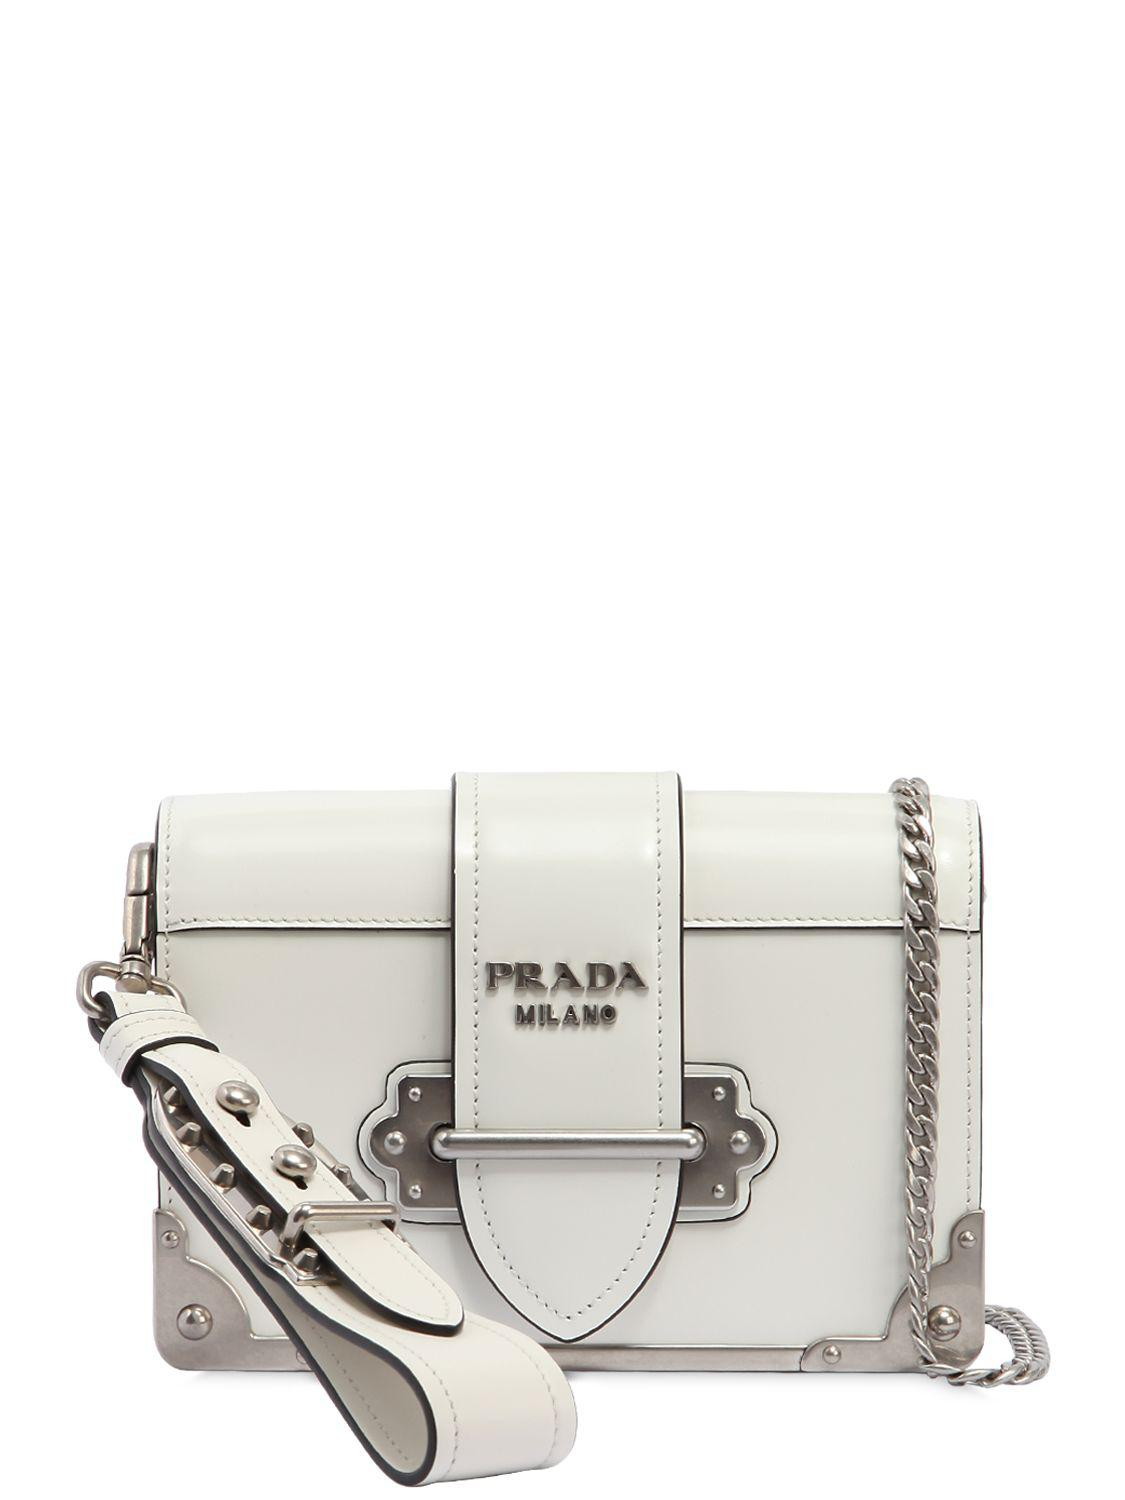 784721ed367f Lyst - Prada Small Cahier Polished Leather Bag in White